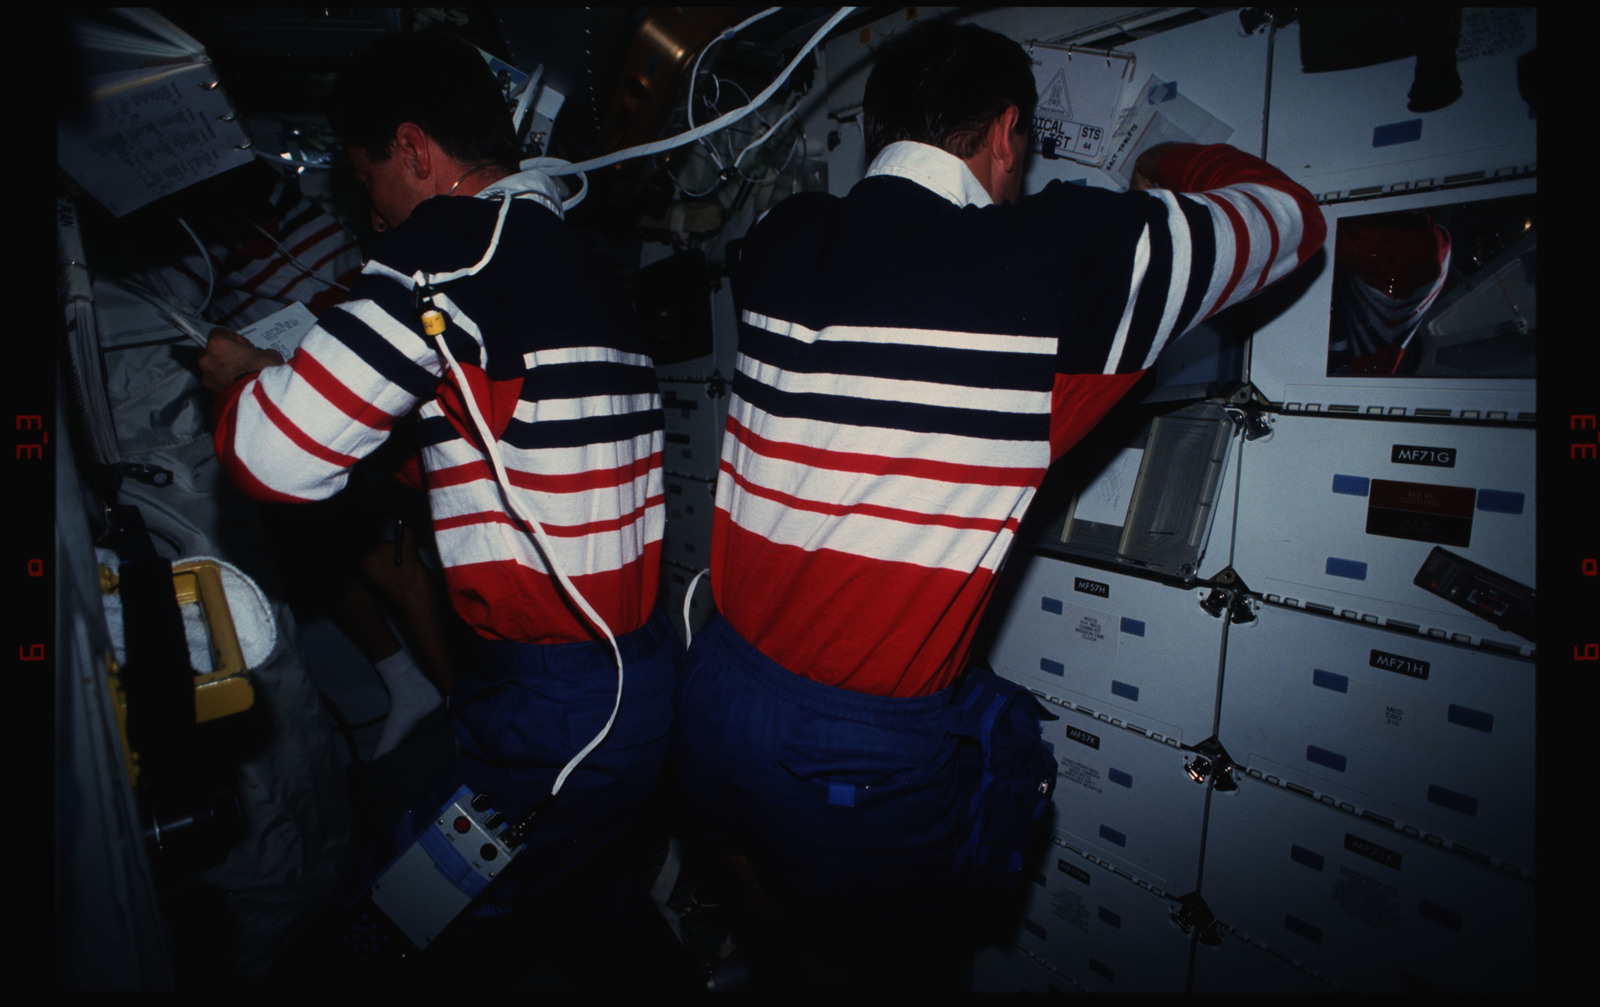 STS044-16-033 - STS-044 - STS-44 Pilot Henricks and PS Hennen work on OV-104's middeck